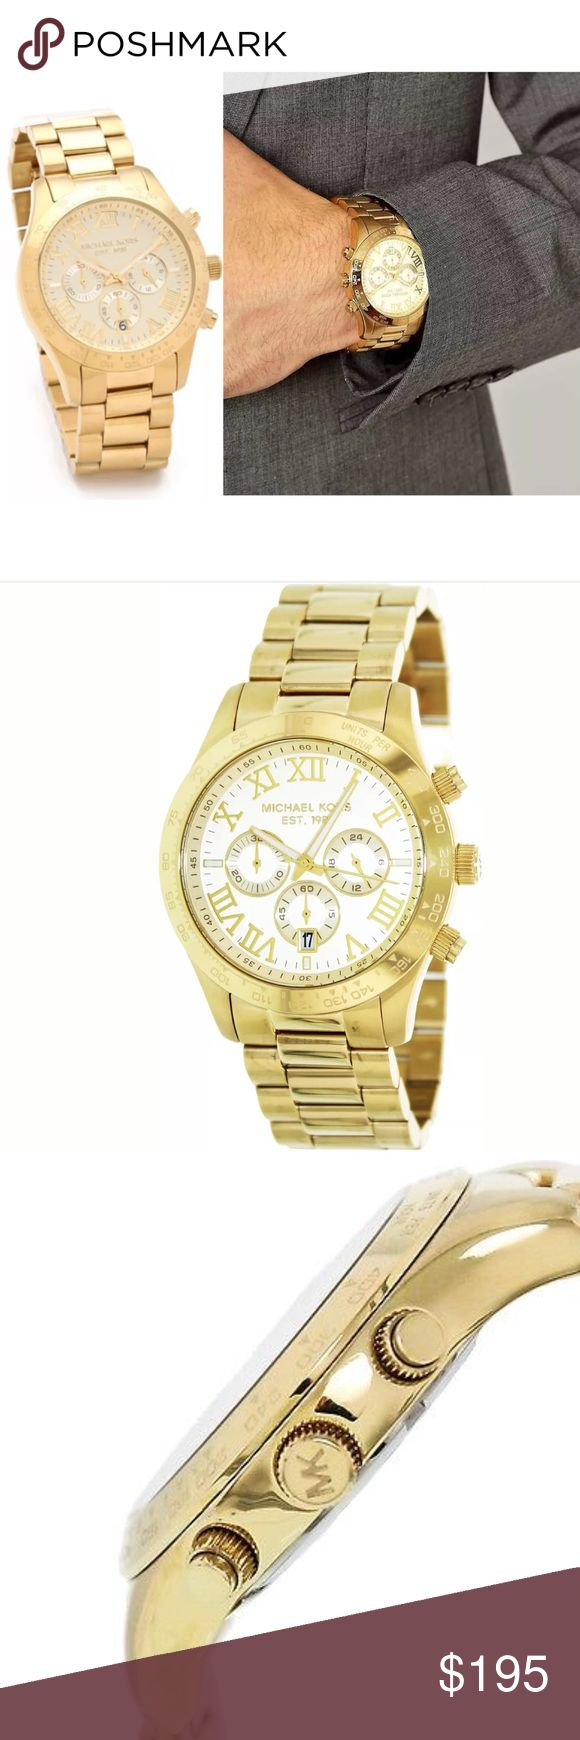 Michael Kors Layton gold & white face unisex watch Brand new with a $250 pricetag. Authentic. Comes in the original watch box with authenticity/warranty booklet and pillow. I added a picture of this on a male and female so you can see what it looks like on either gender as I'm pretty sure it's a unisex watch. It's very pretty and the detailing is top notch! Michael Kors Layton gold & white face unisex watch. Michael Kors Accessories Watches